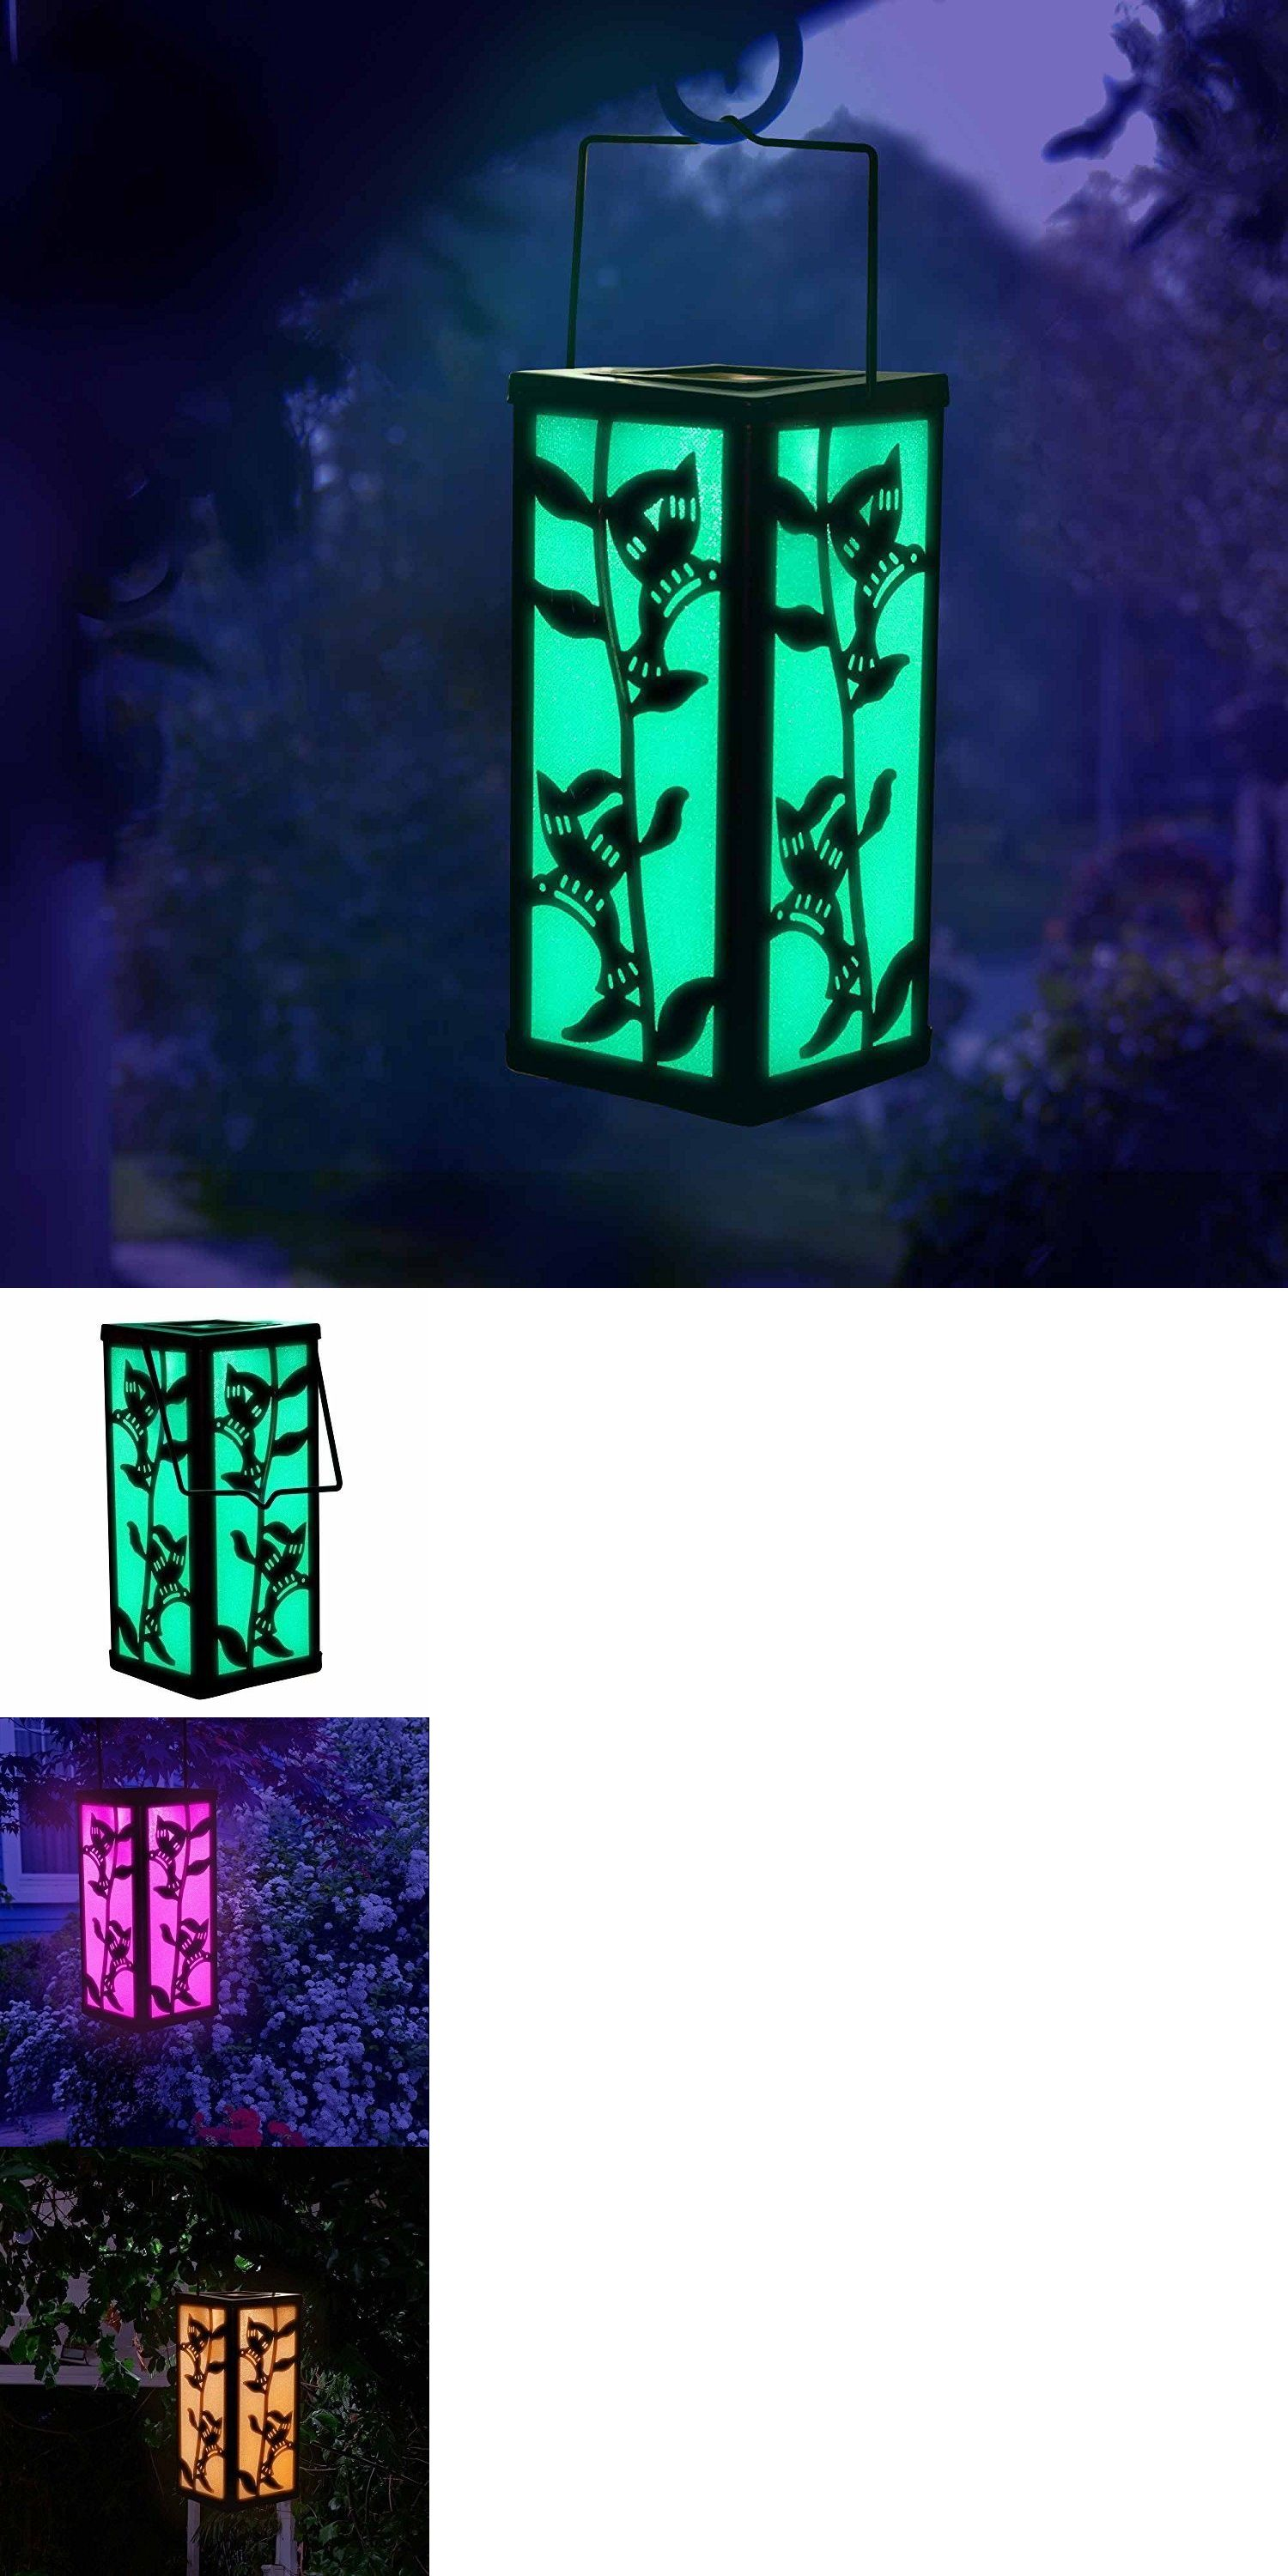 Hanging outdoor candle lanterns for patio - Outdoor D Cor Candle Lanterns 183392 Outdoor Hanging Lantern Solar Color Changing Patio Garden Lighting